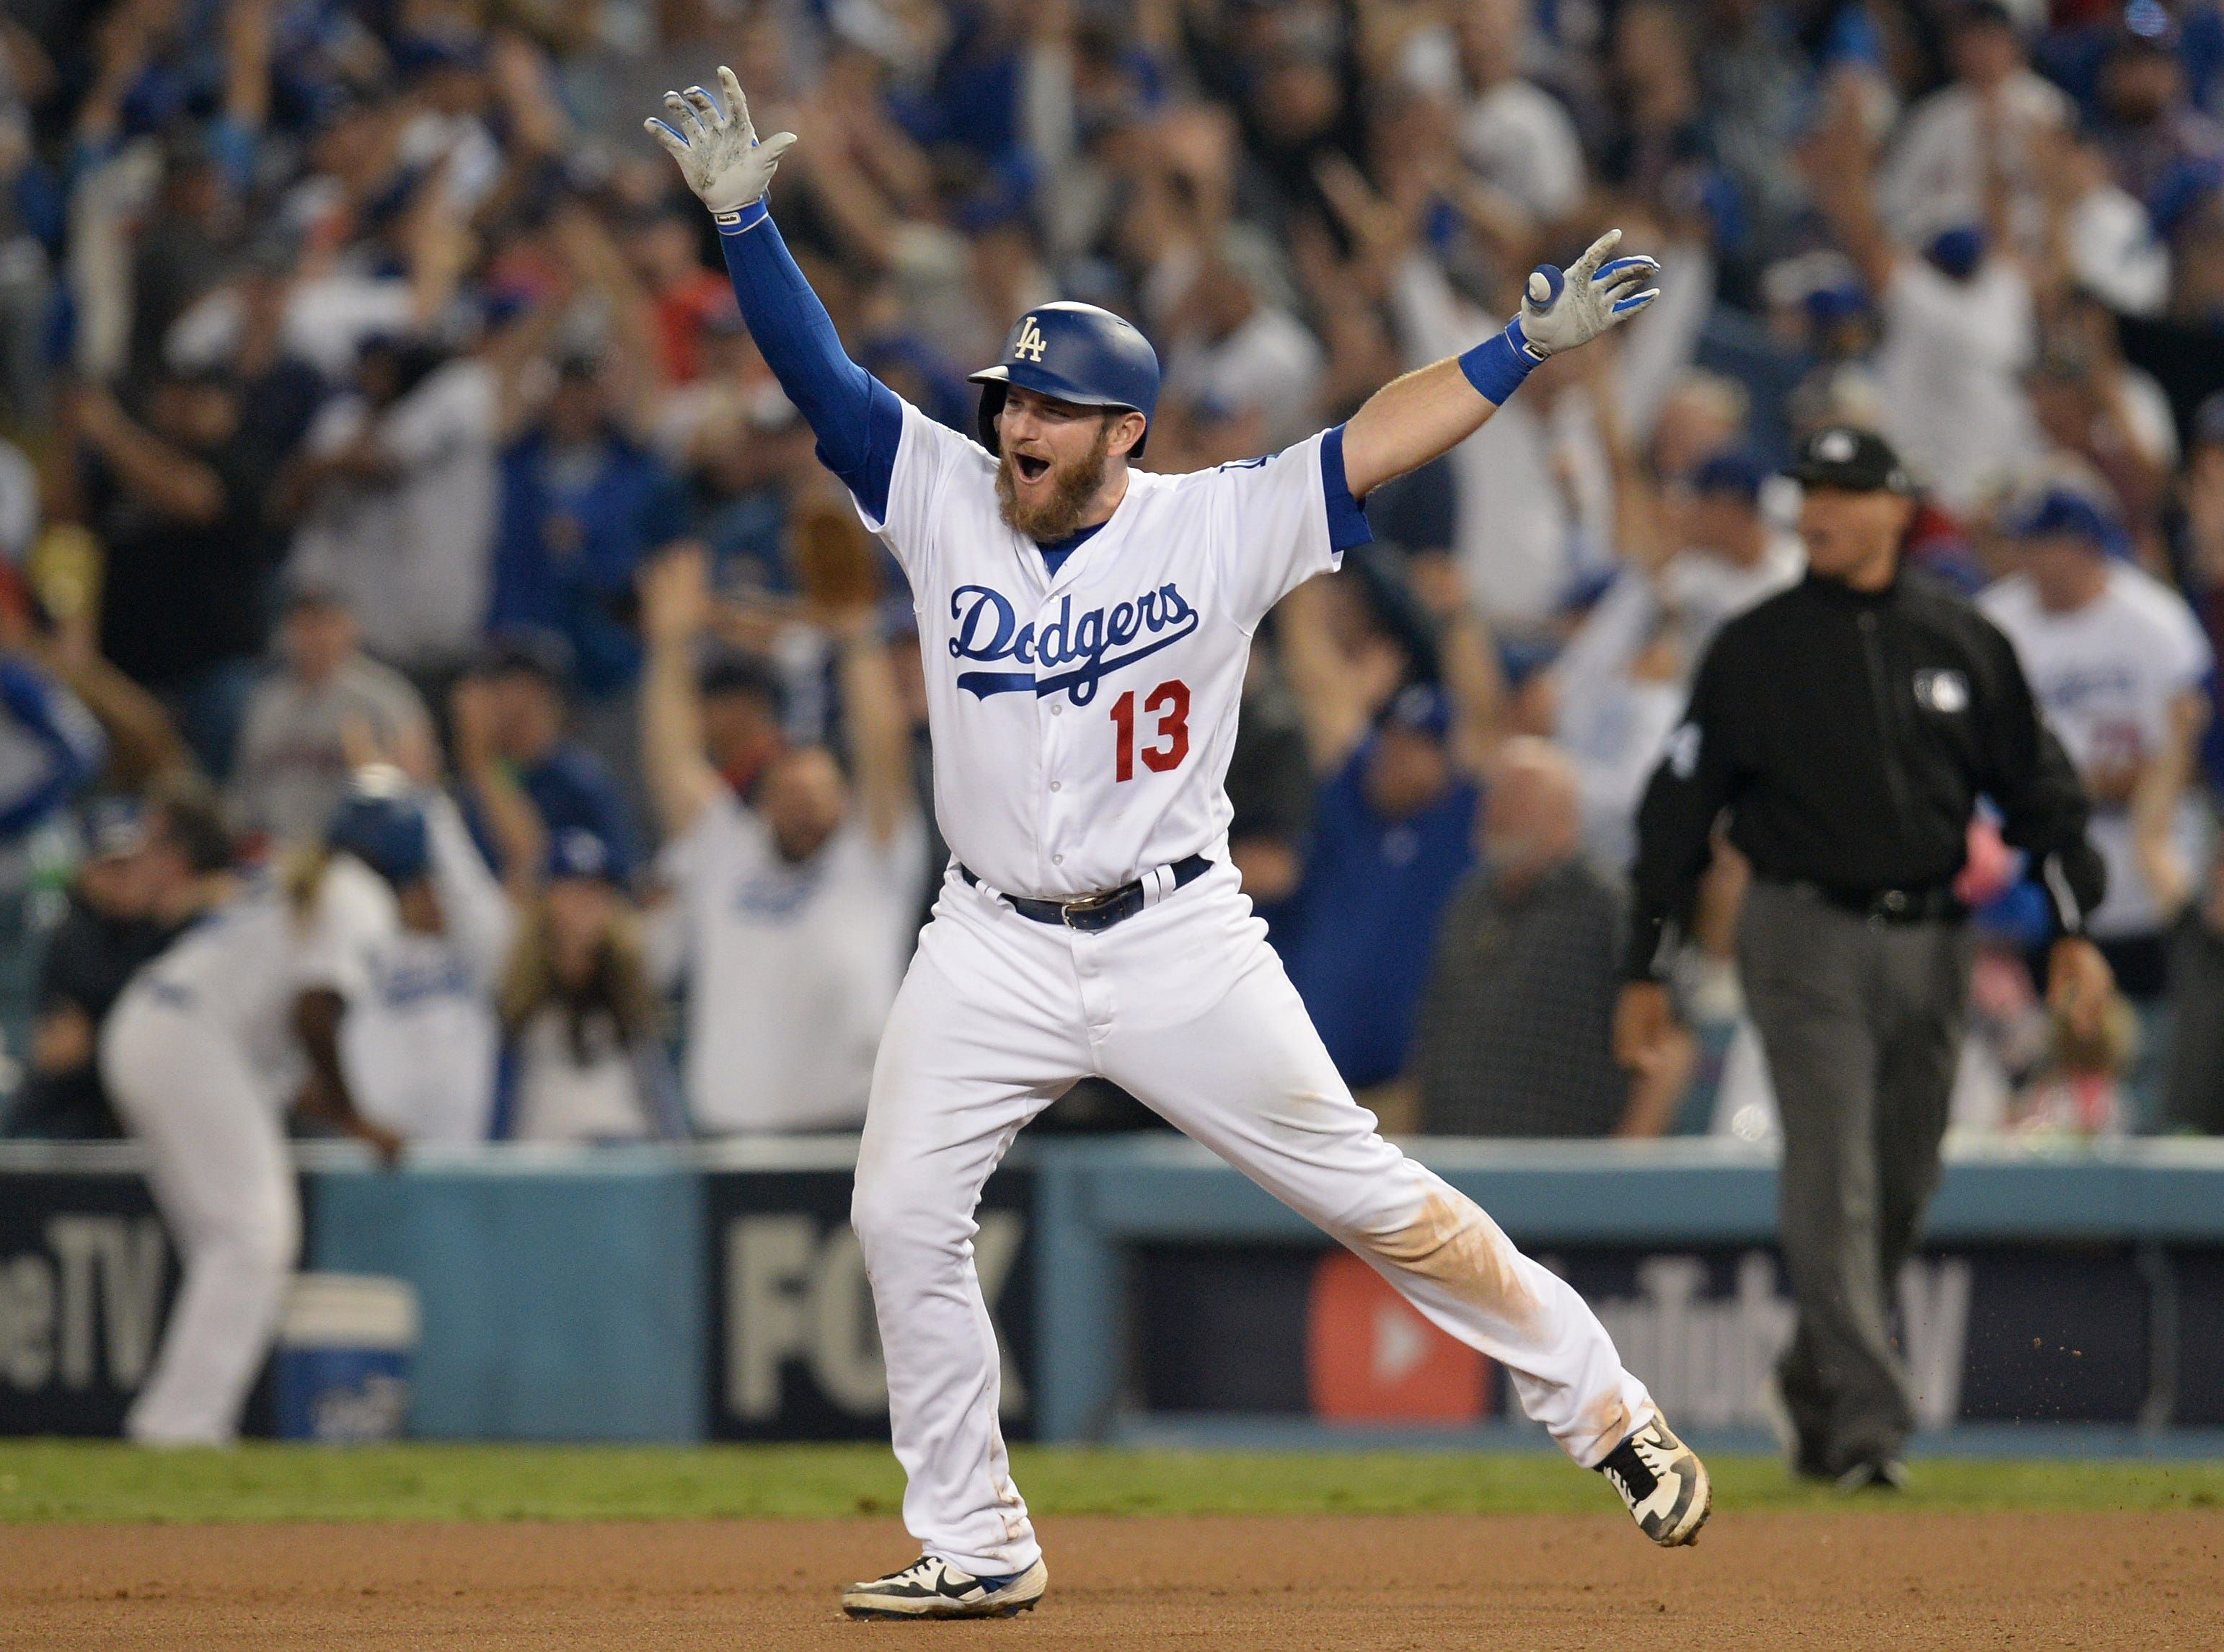 Oct. 26: Los Angeles Dodgers first baseman Max Muncy celebrates after hitting a walk-off home run against the Boston Red Sox in the 18th inning in Game 3 of the World Series.